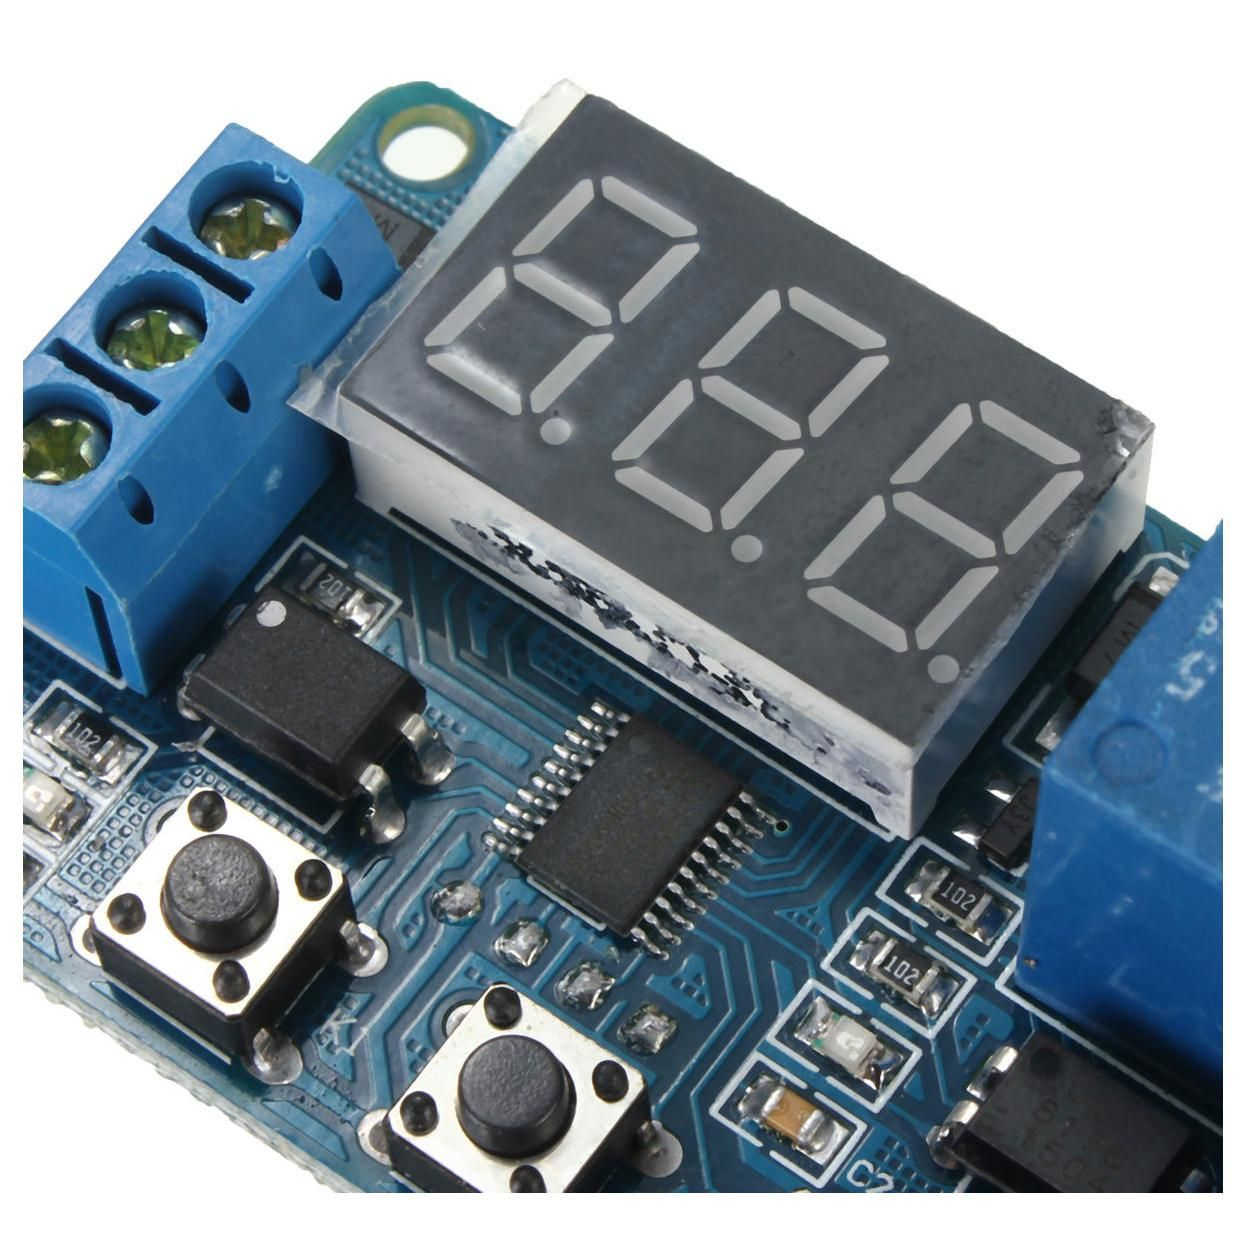 Jfbl 2x Automation Dc 12v Led Display Digital Delay Timer Control Price Of Relay Switch Module Yesterdays Us 864 753 Eur Todays 804 701